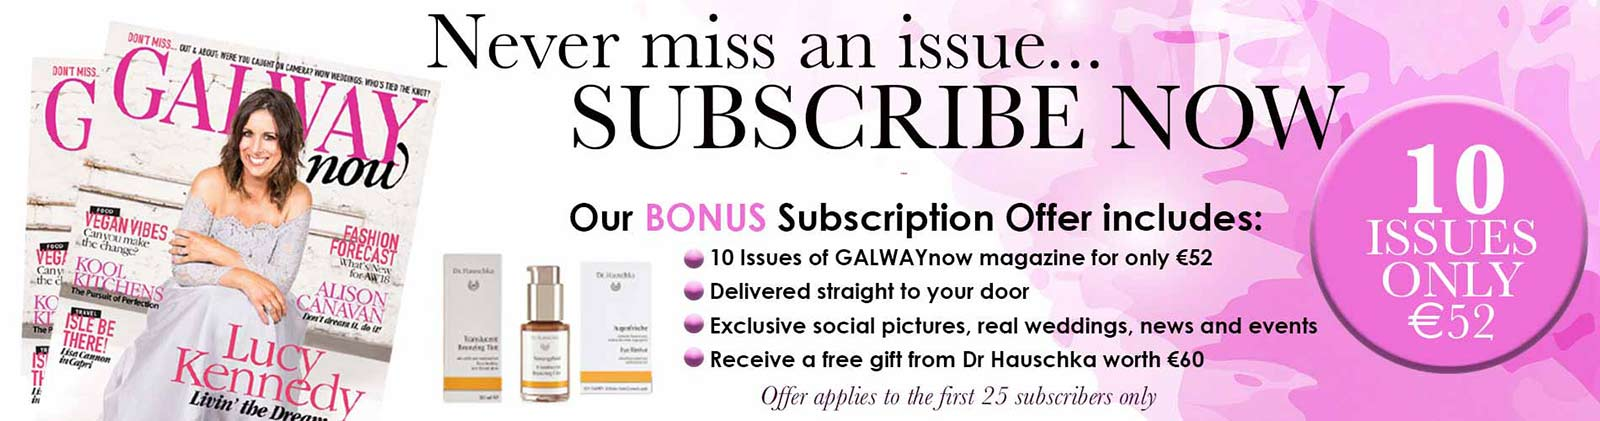 subscribe to Galway now magazine